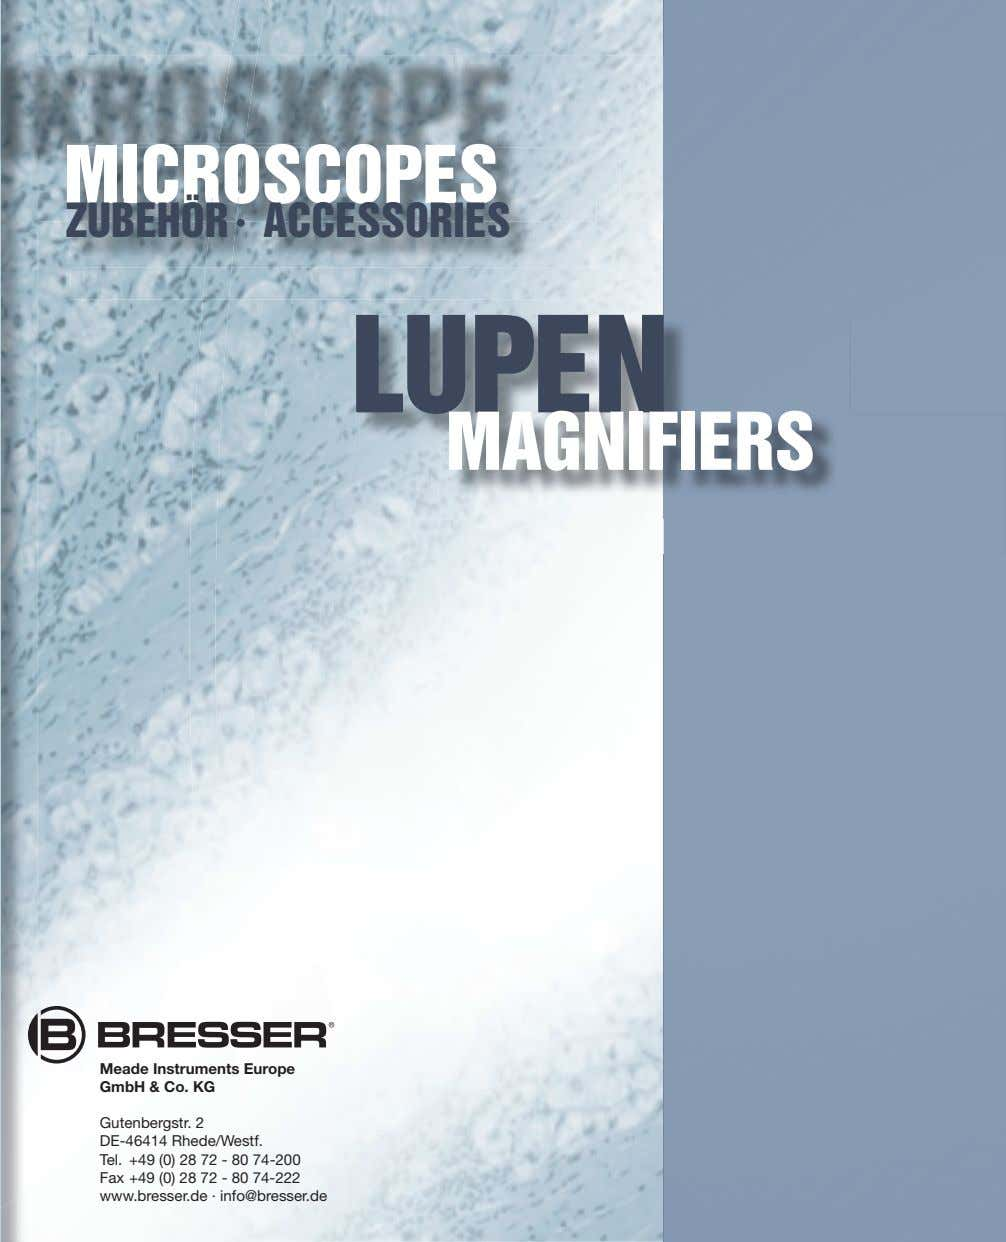 MICROSCOPES ZUBEHÖR · ACCESSORIES LUPEN MAGNIFIERS Meade Instruments Europe GmbH & Co. KG Gutenbergstr. 2